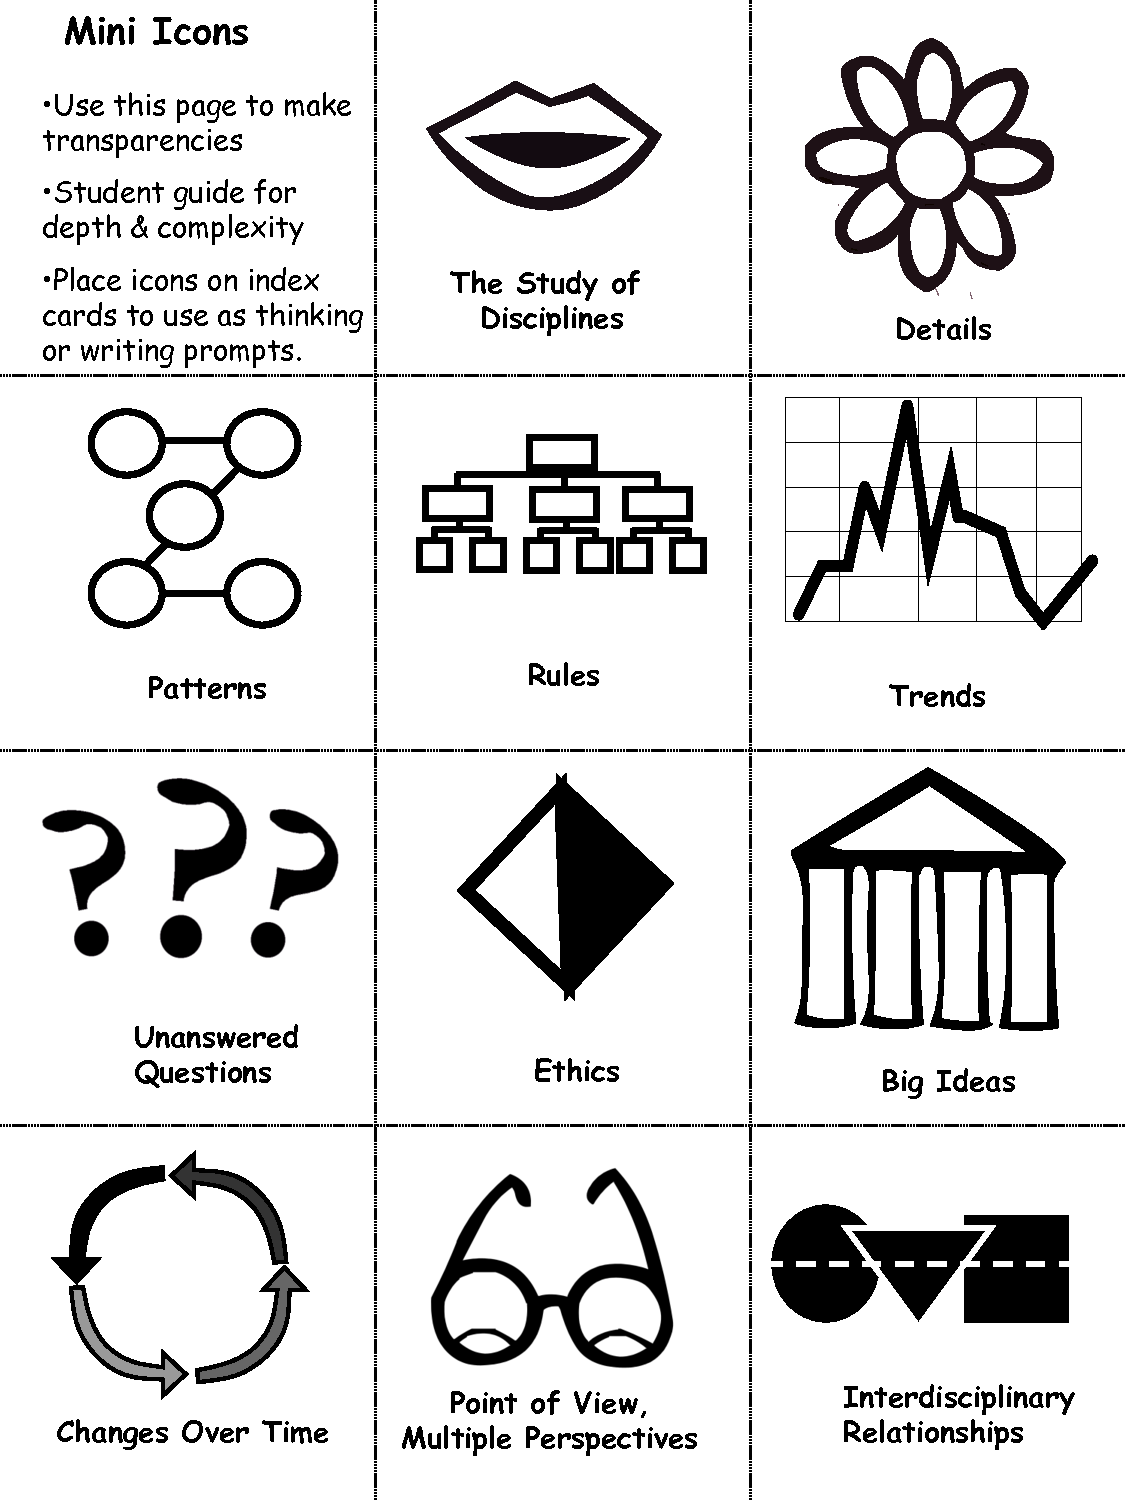 image about Depth and Complexity Icons Printable identify 14 Element And Complexity Icons Views Pictures - A number of